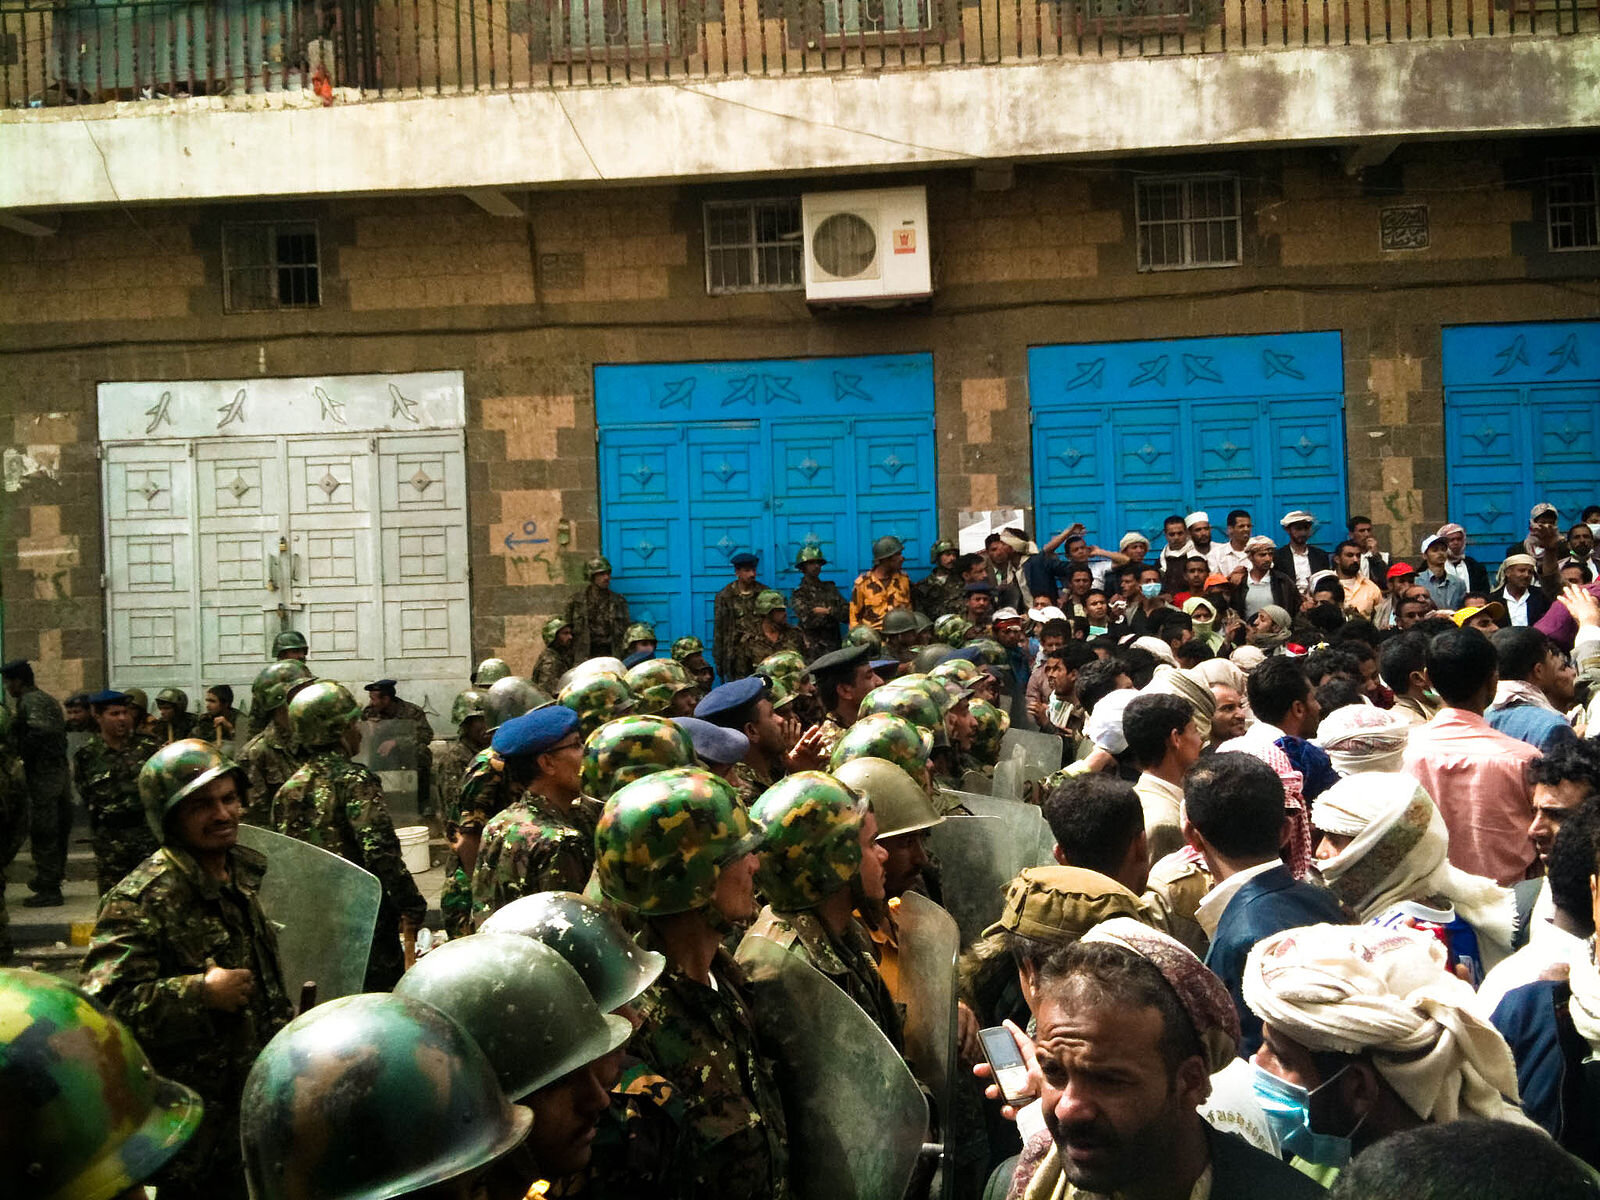 Protestors face security forces in Sana'a in 2012.